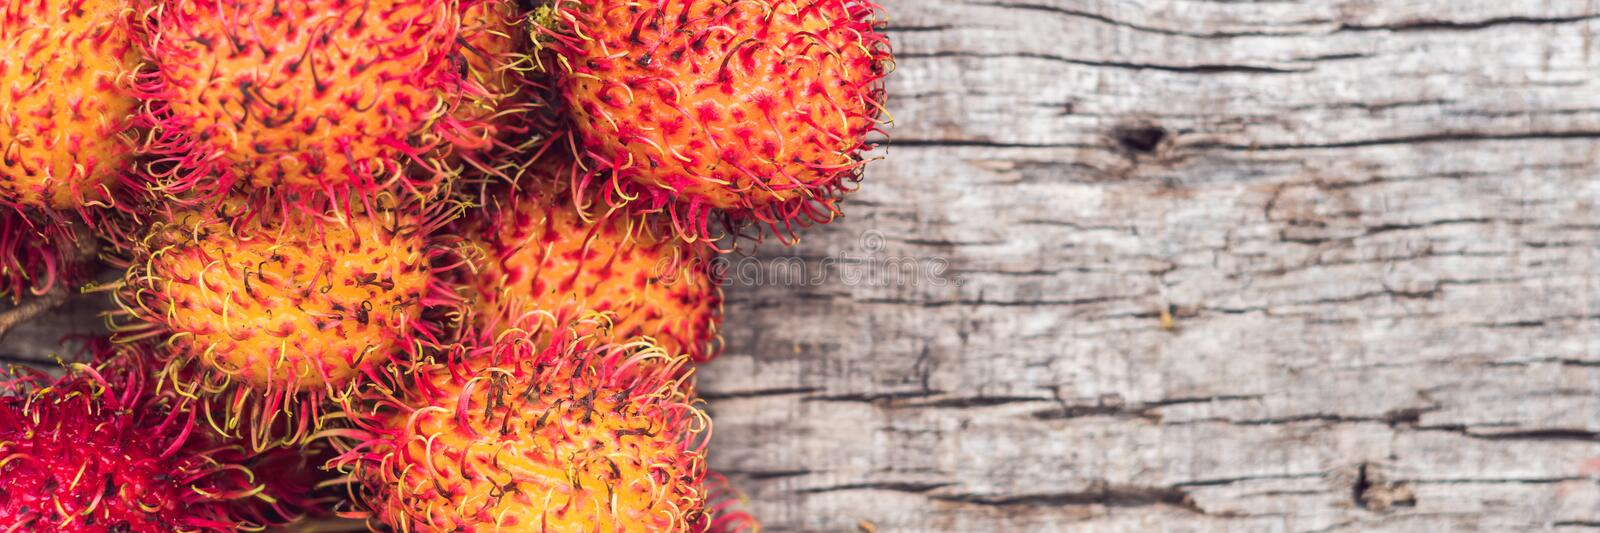 BANNER, Long Format Fresh rambutan fruit on wooden teble background, closeup, fruit in Thailand royalty free stock images